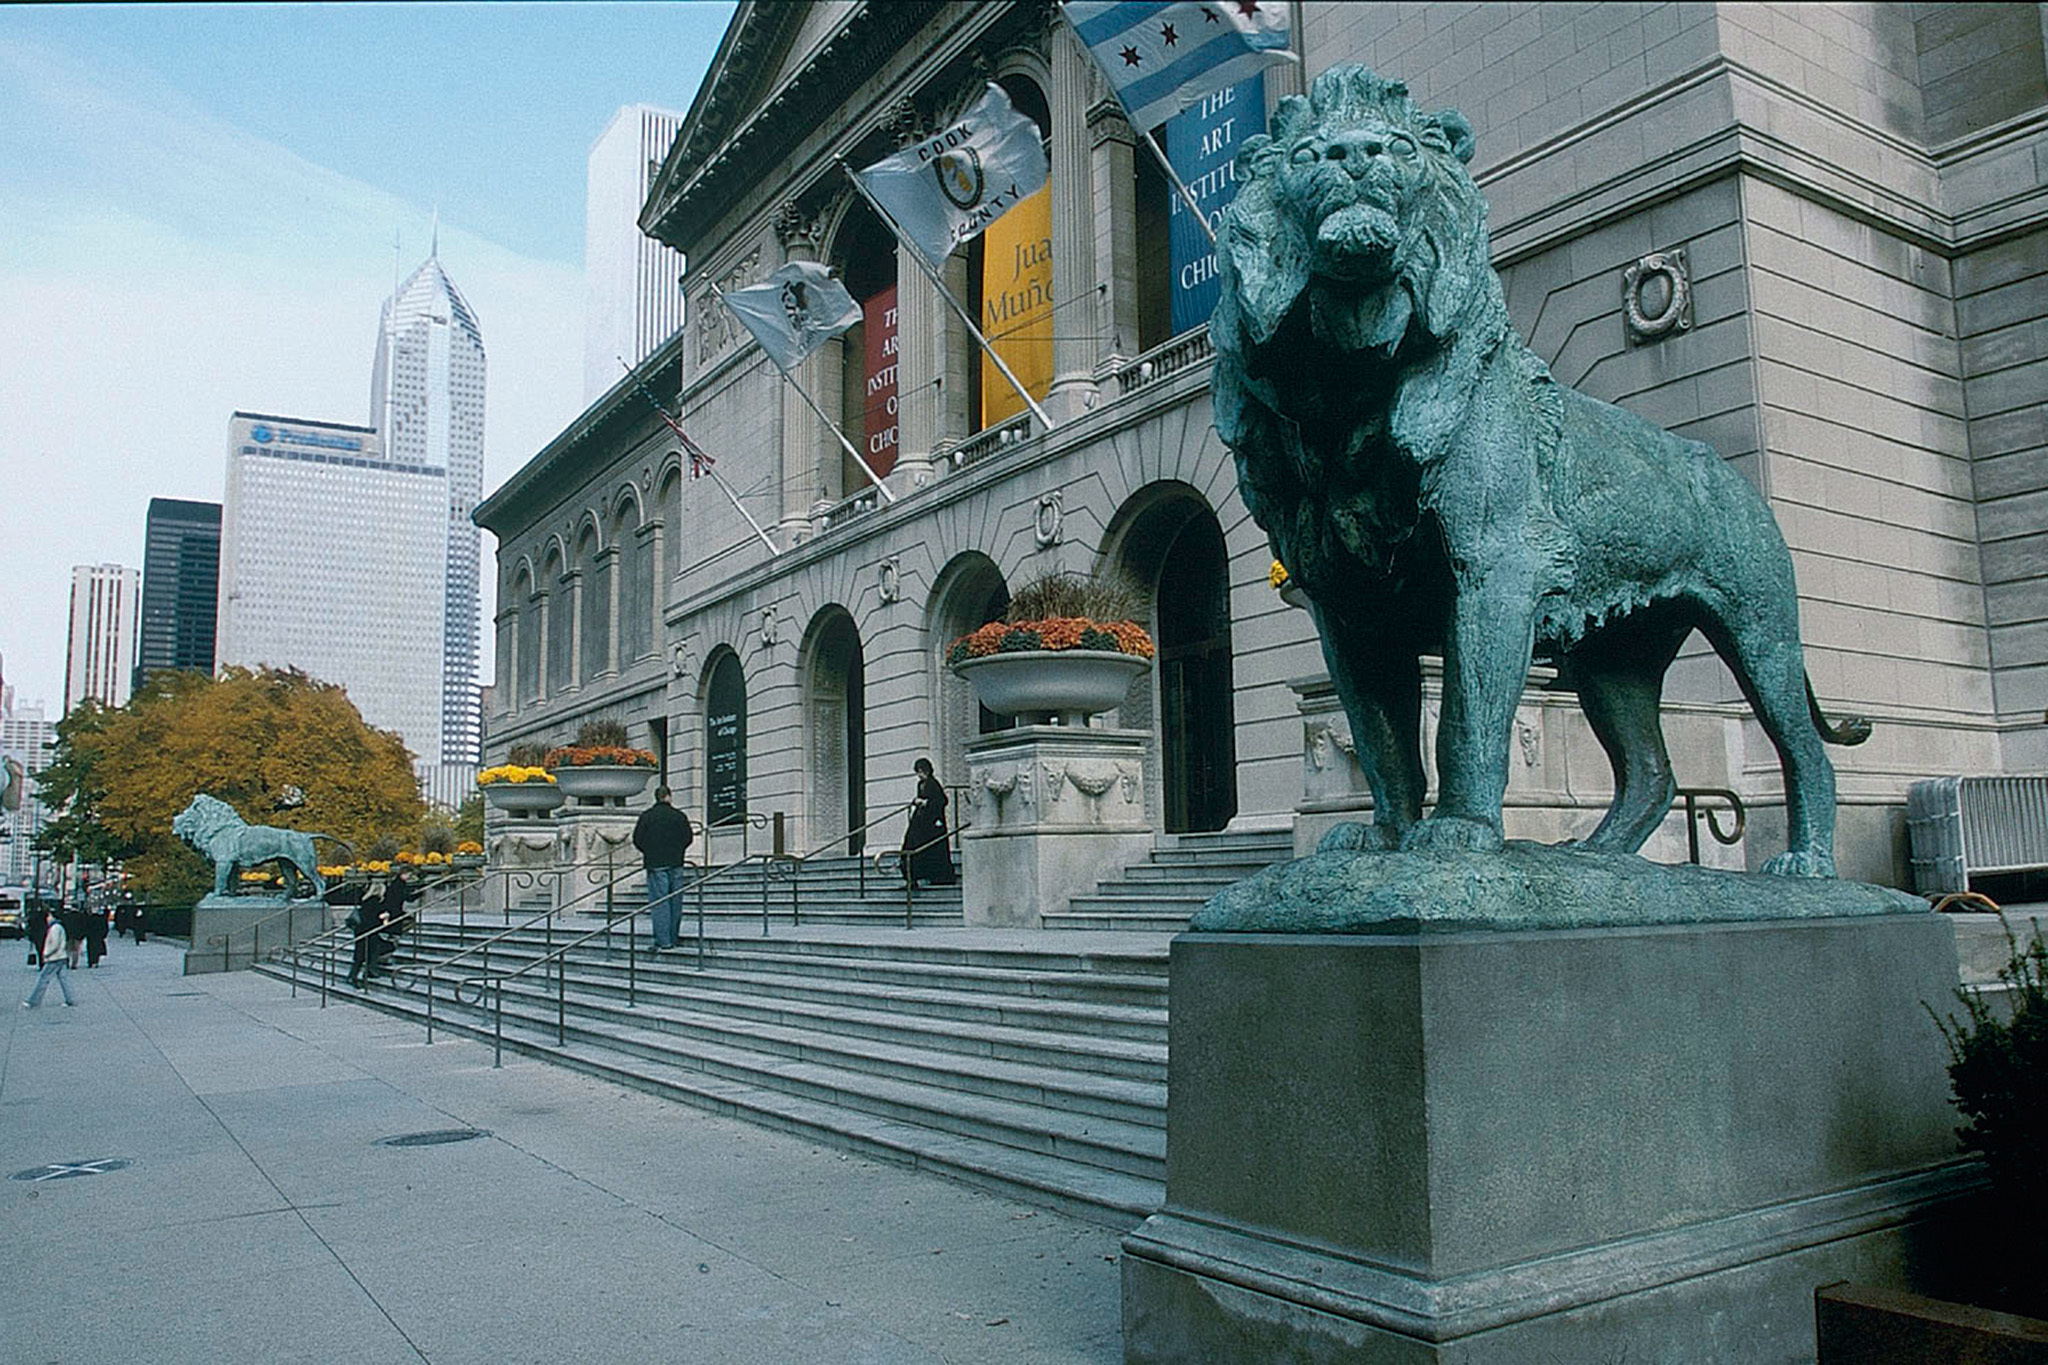 Make like Ferris Bueller and see iconic artworks at the Art Institute of Chicago.